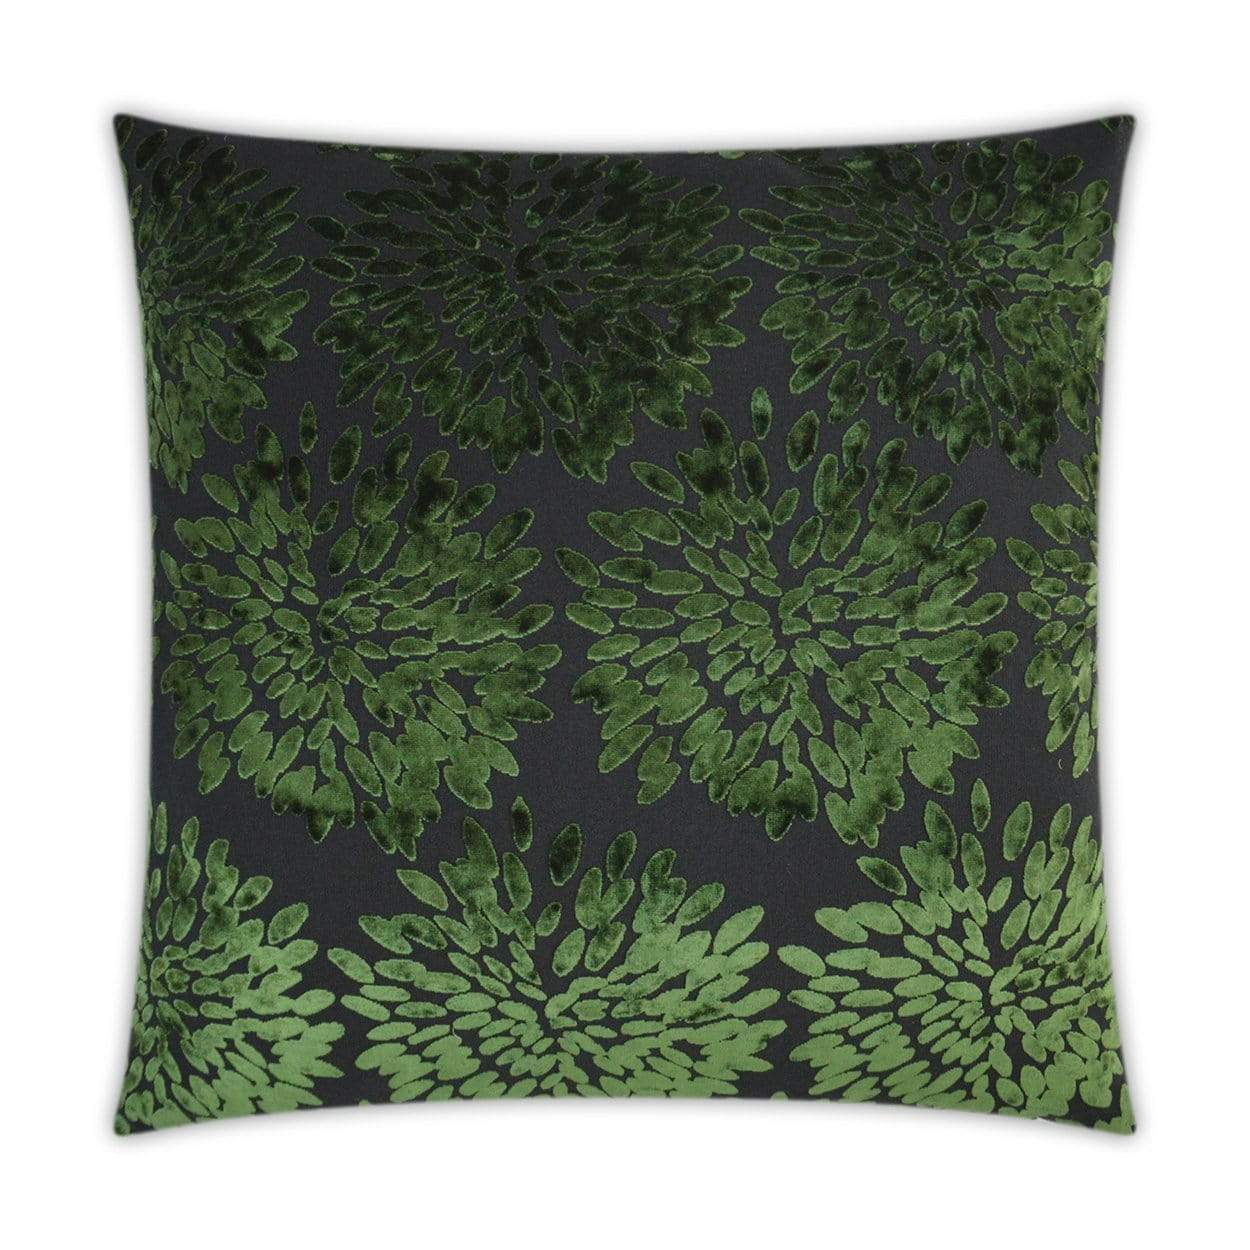 D.V. Kap D.V. Kap Tuscany Pillow - Available in 2 Colors Emerald 2319-E